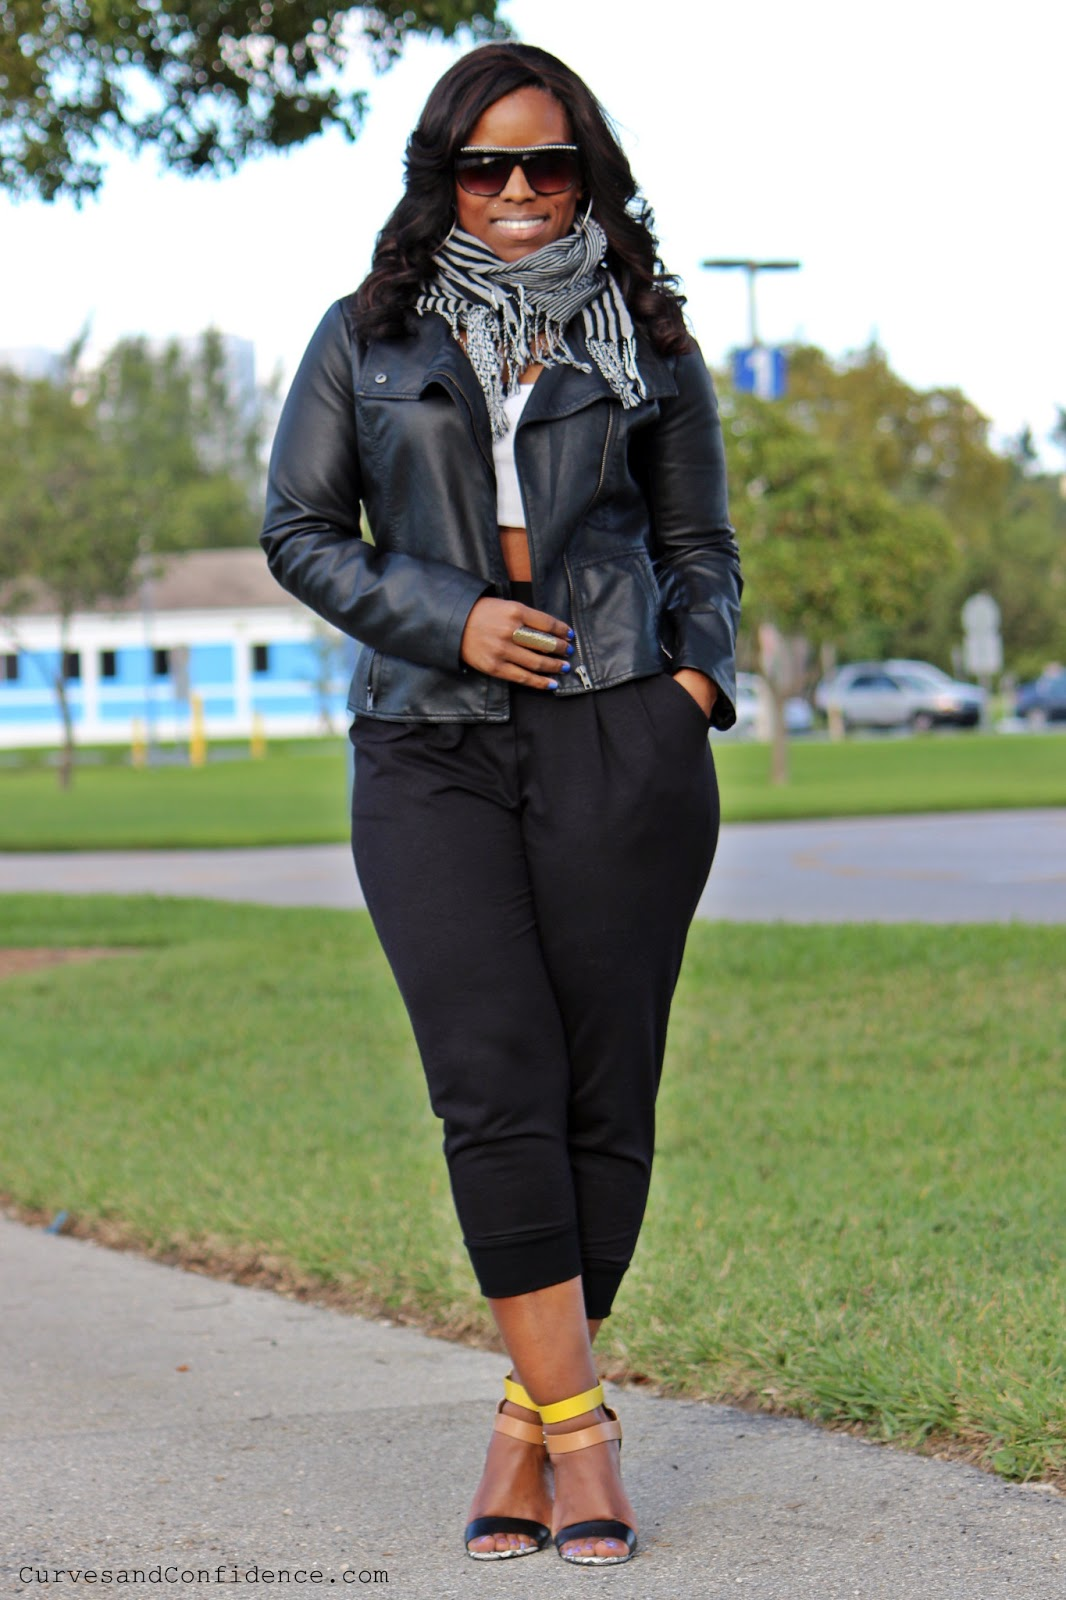 High Waist Cropped Top And Jeans Day Outfit Winter